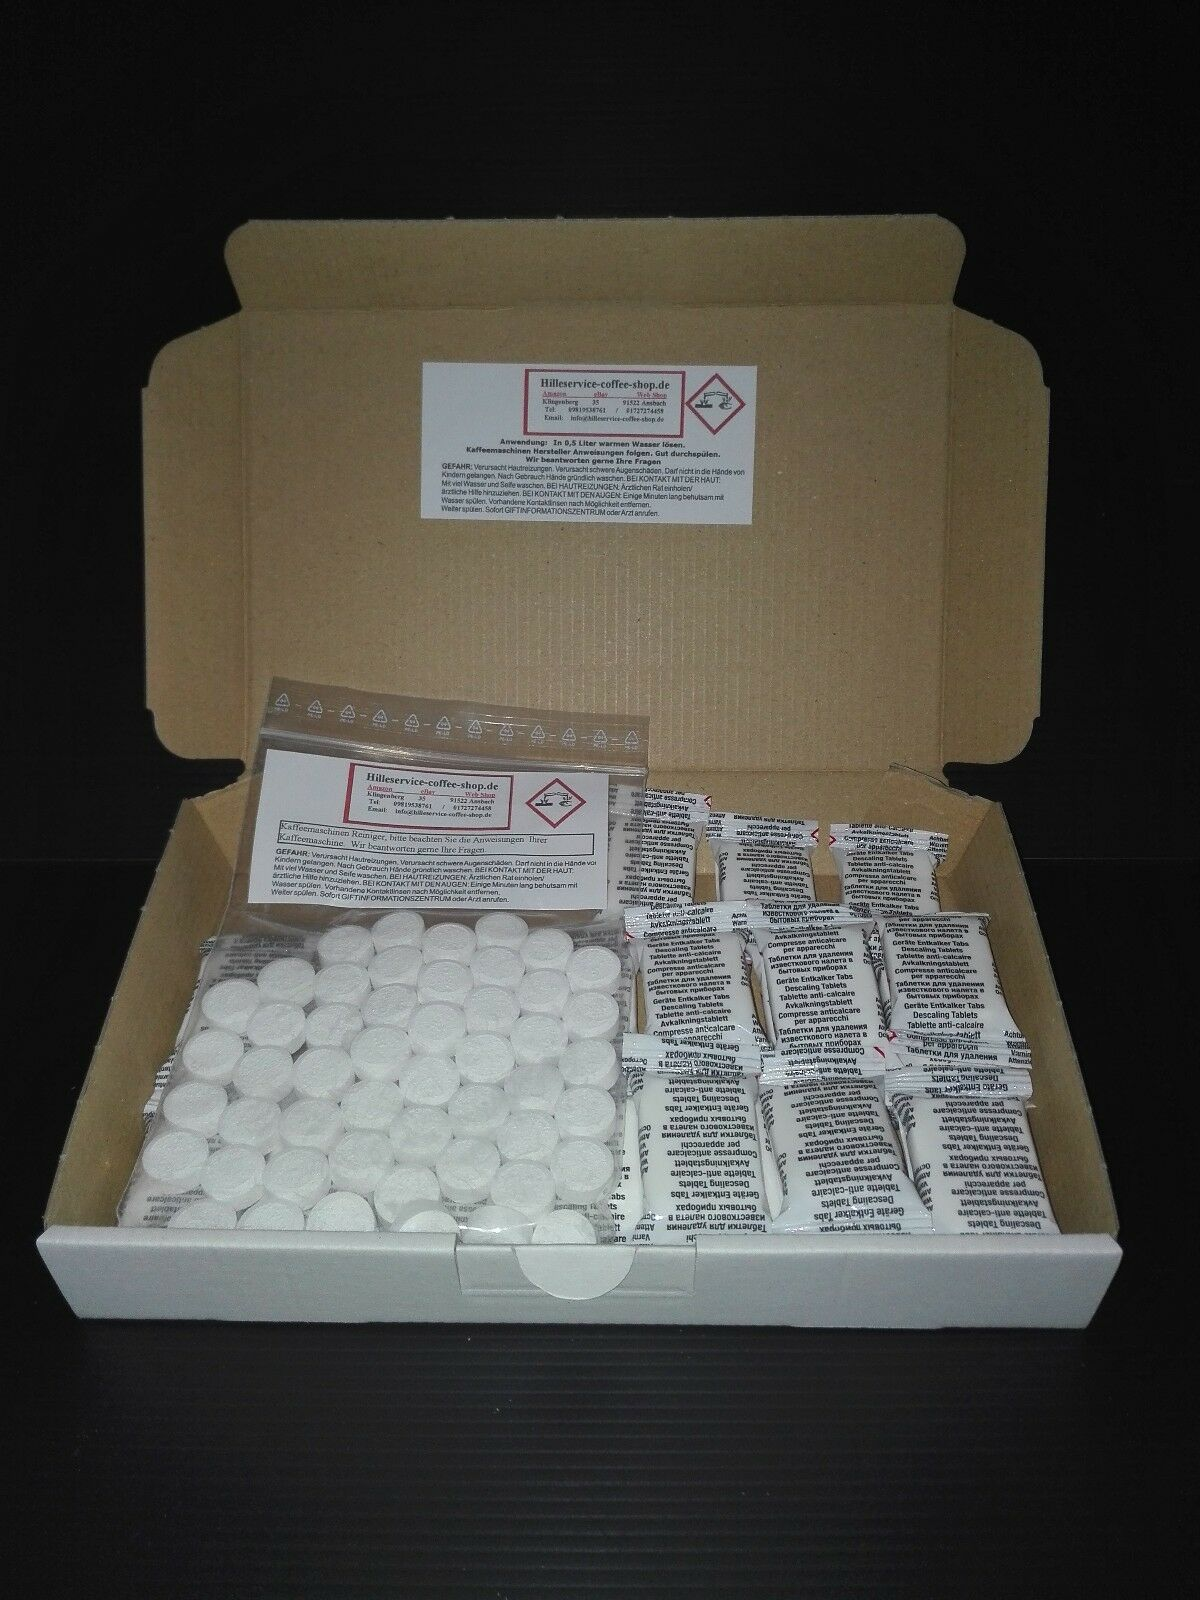 100 cleaning 30 descaling tablets for Siemens Bosch Miele Melitta coffeemachine